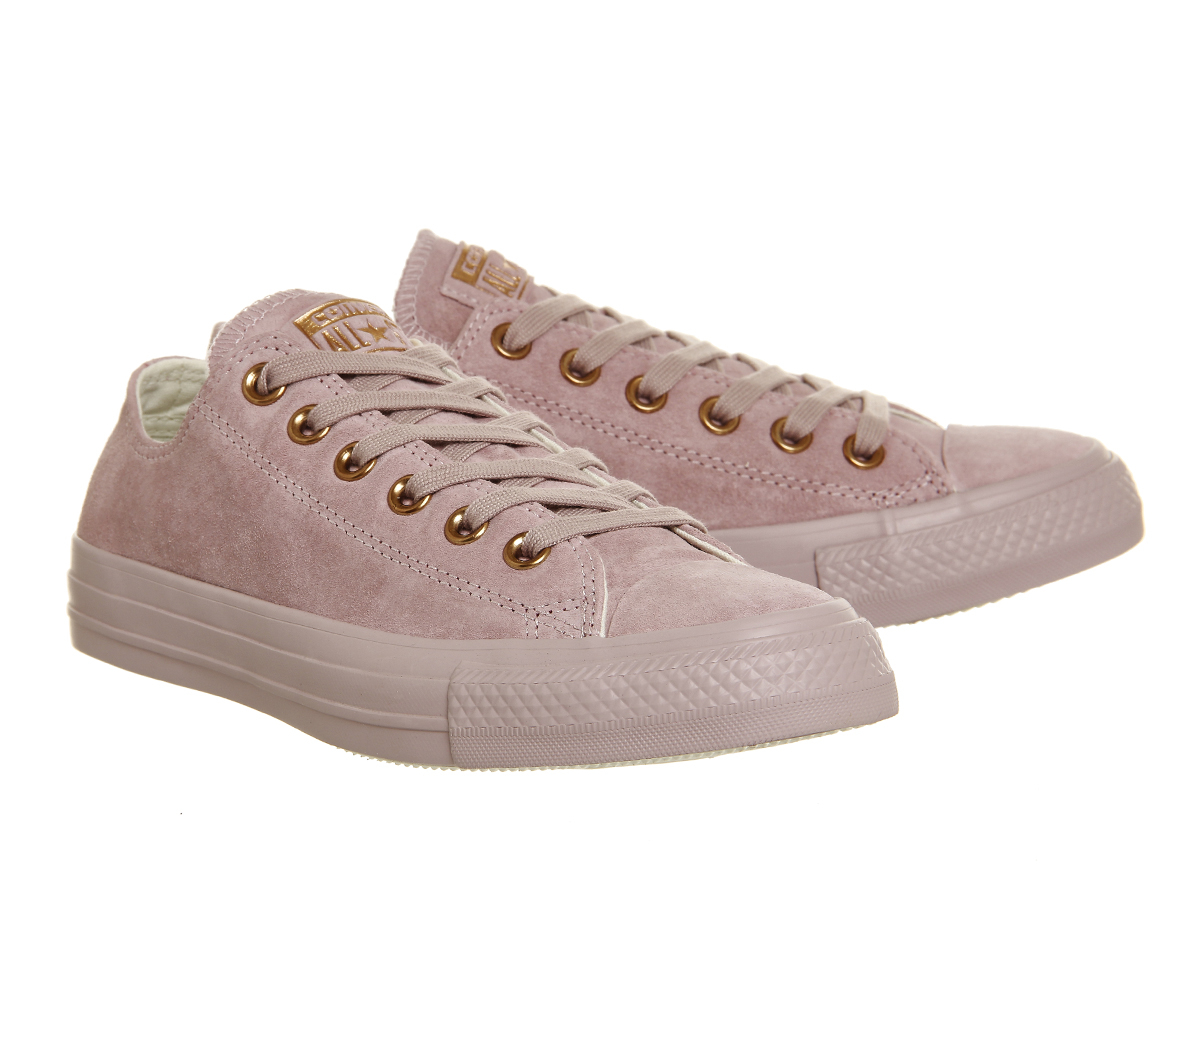 converse all star low leather in pink lilac lyst. Black Bedroom Furniture Sets. Home Design Ideas